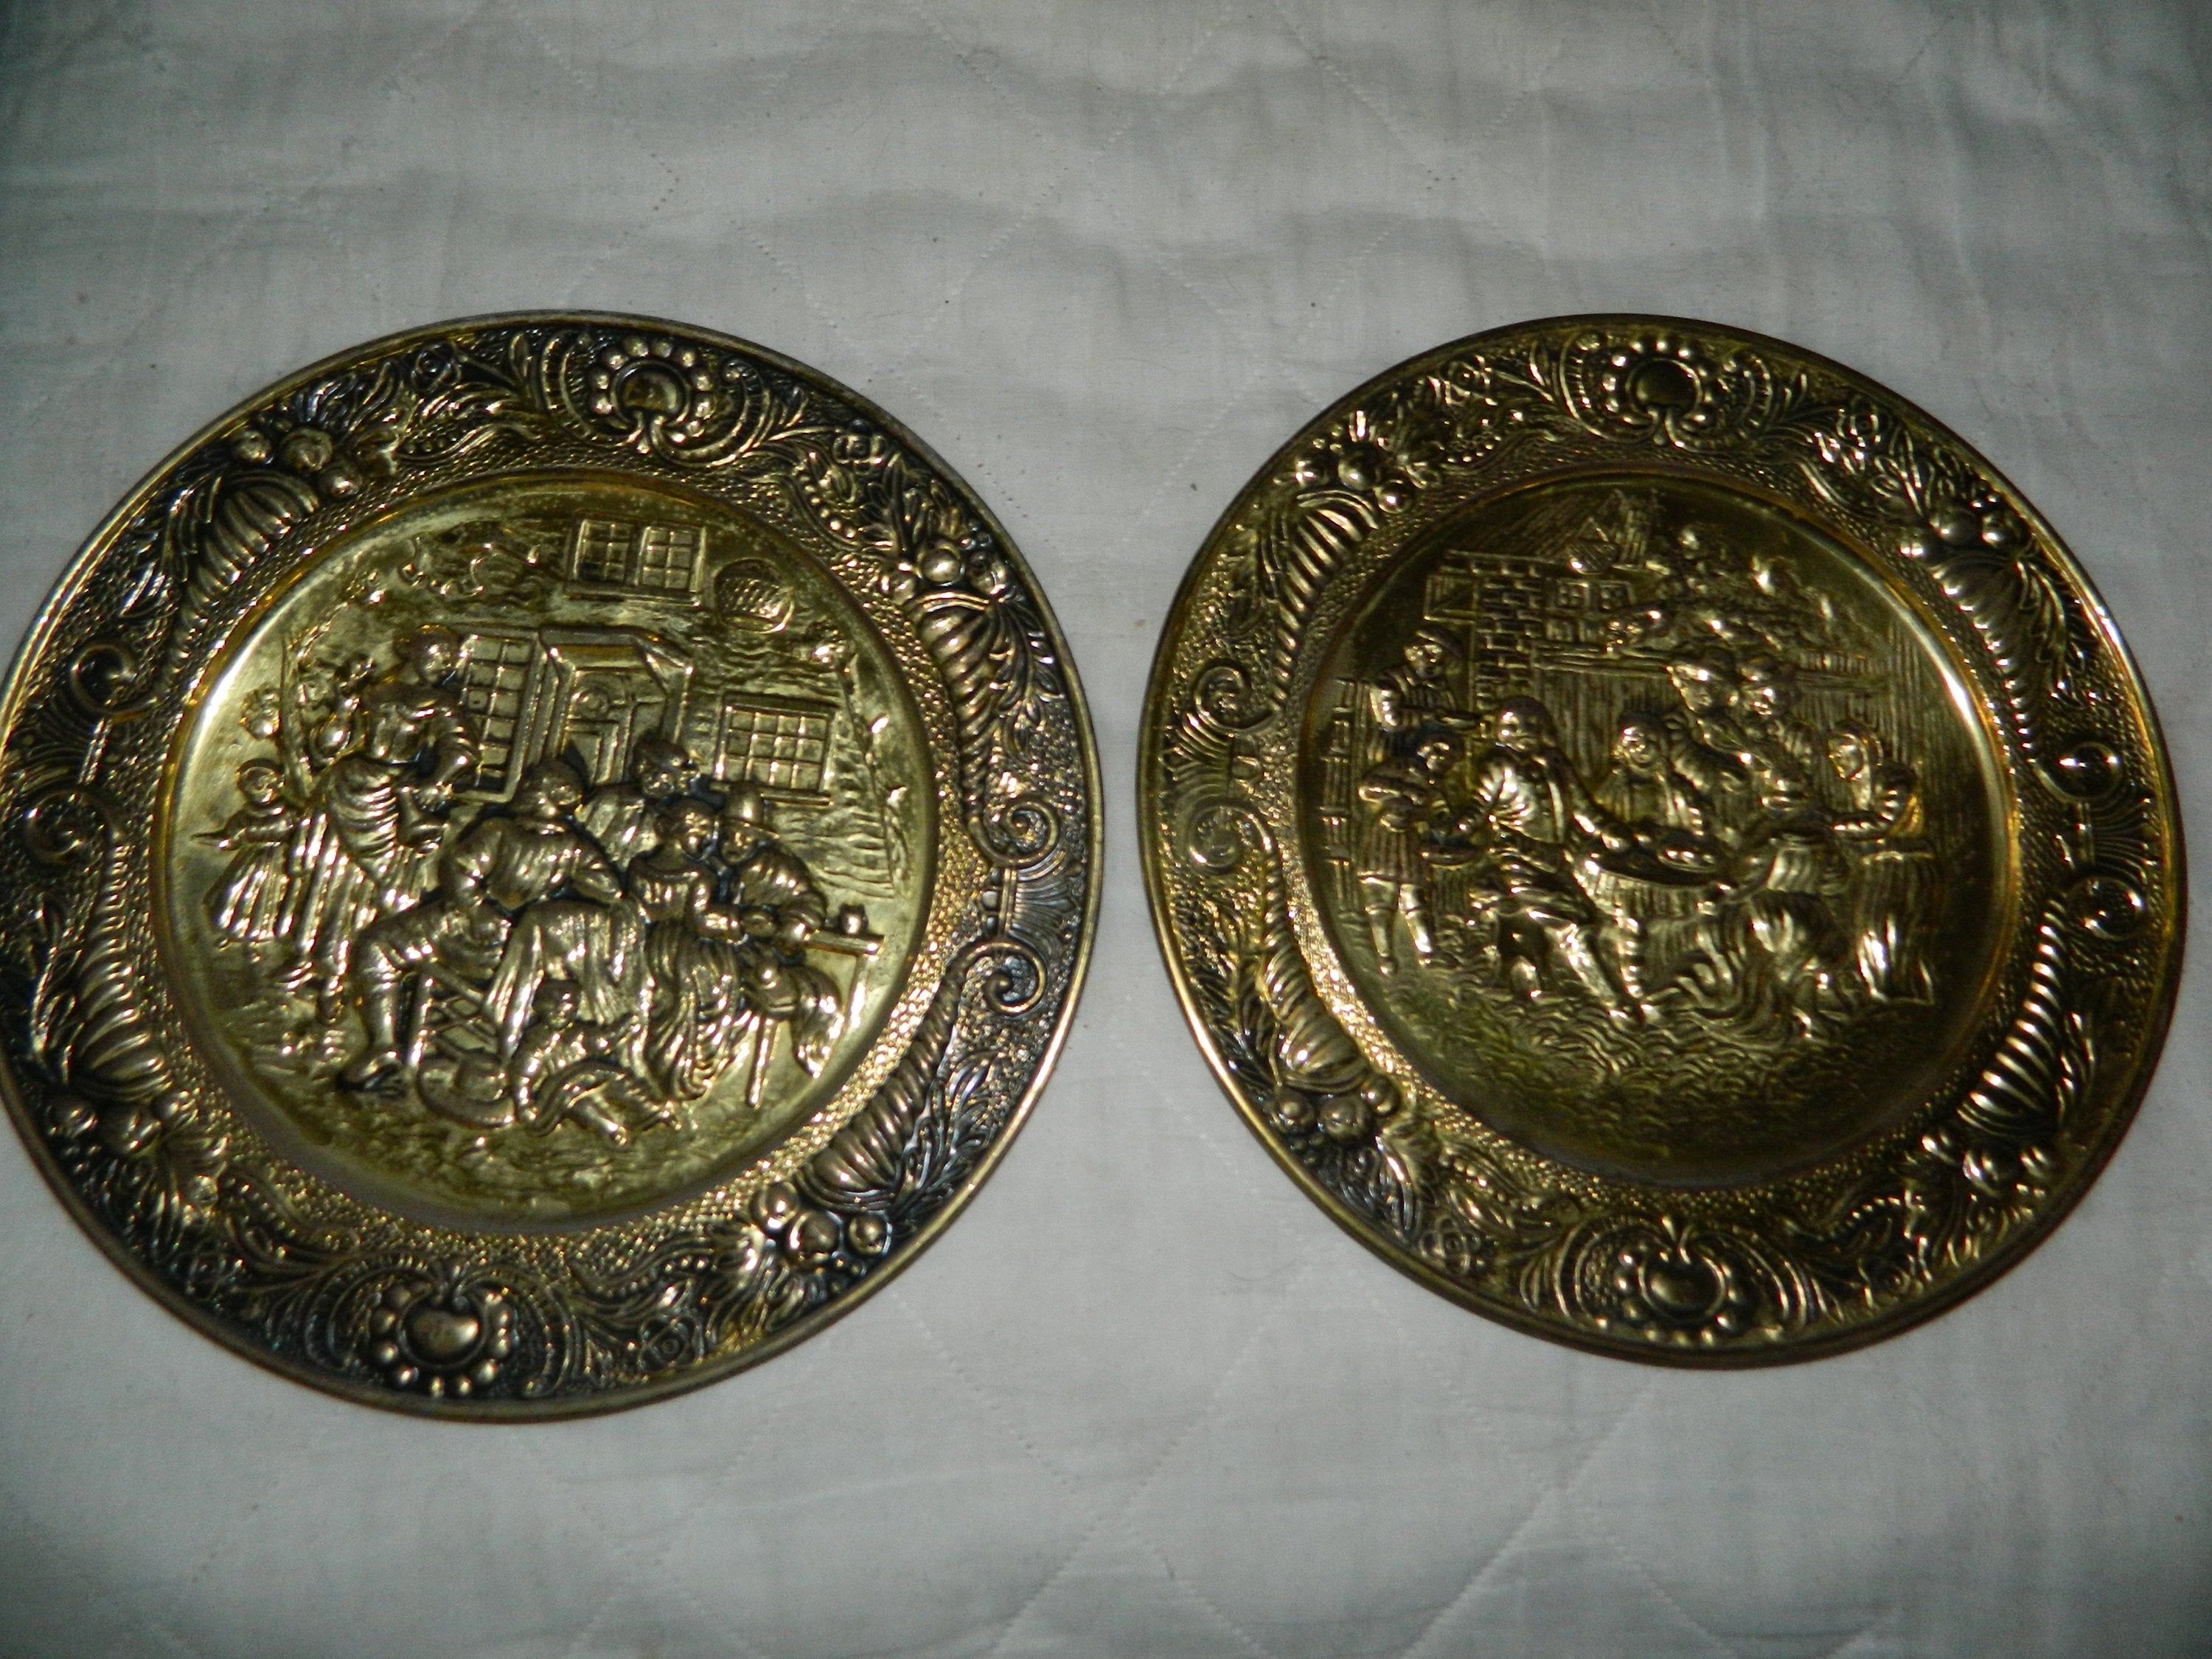 Vintage Set Of Old English Embossed Brass Plates A Pair Of Etsy Brass Wall Hanging Plates On Wall Brass Decor